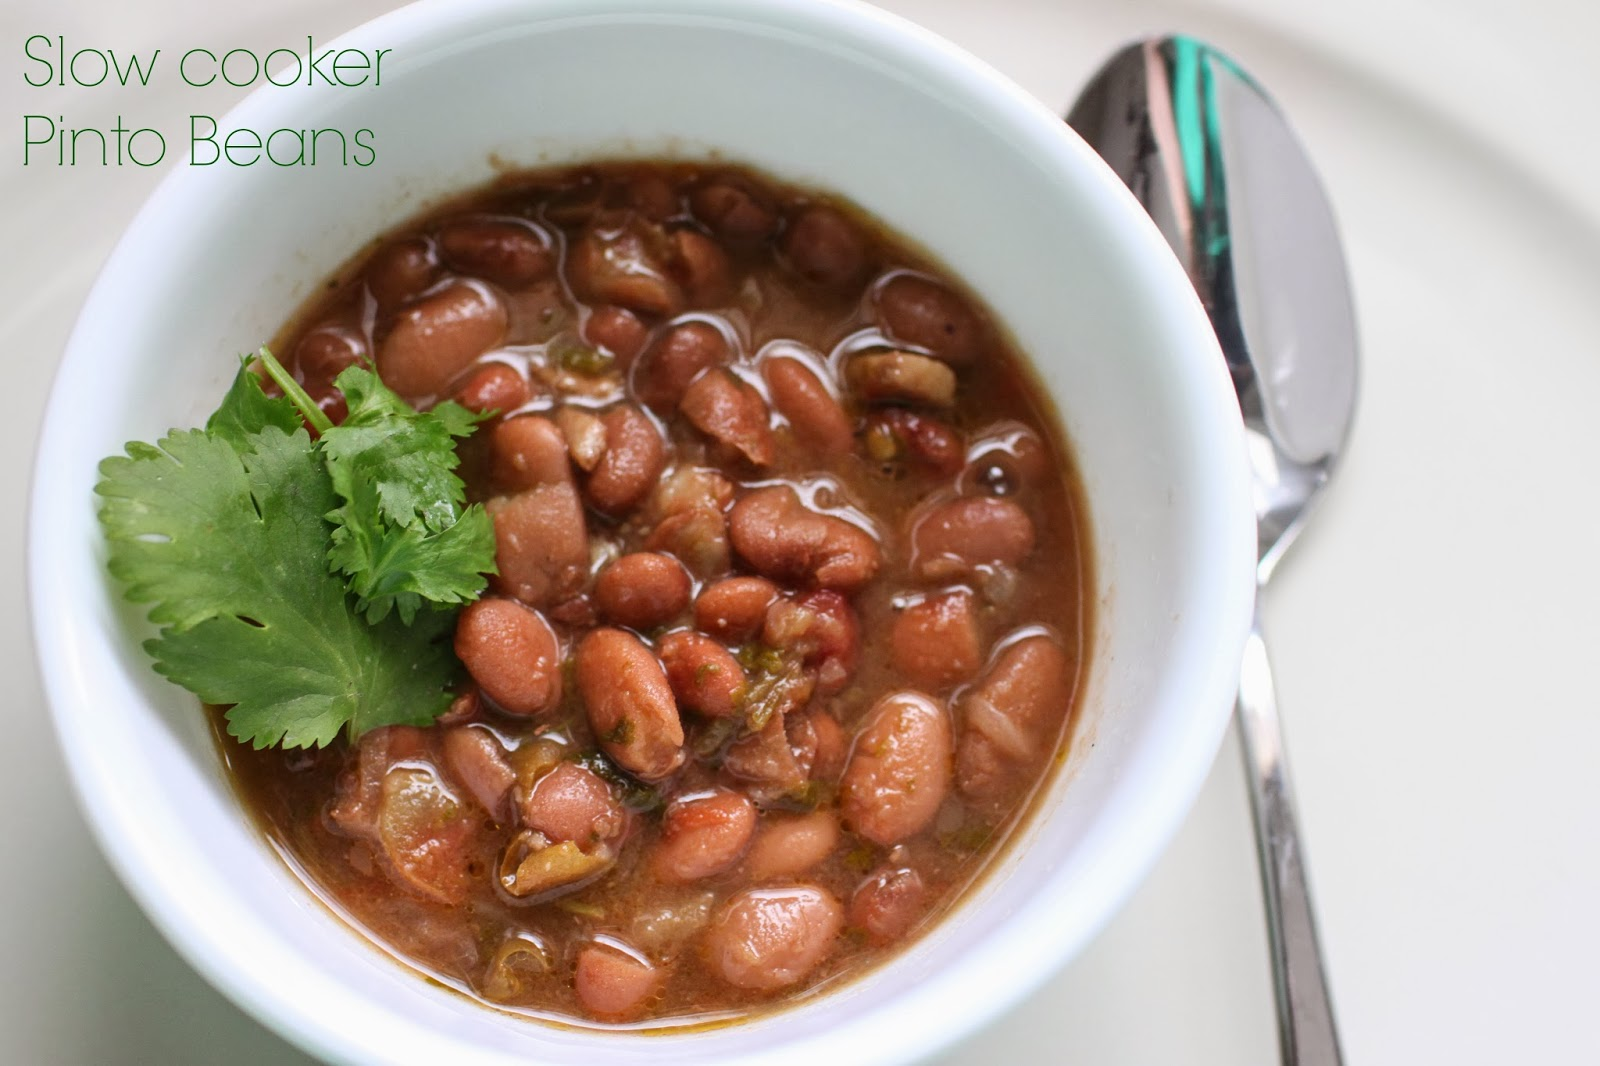 SLOW COOKER RECIPE PINTO BEANS | slow cooker recipes